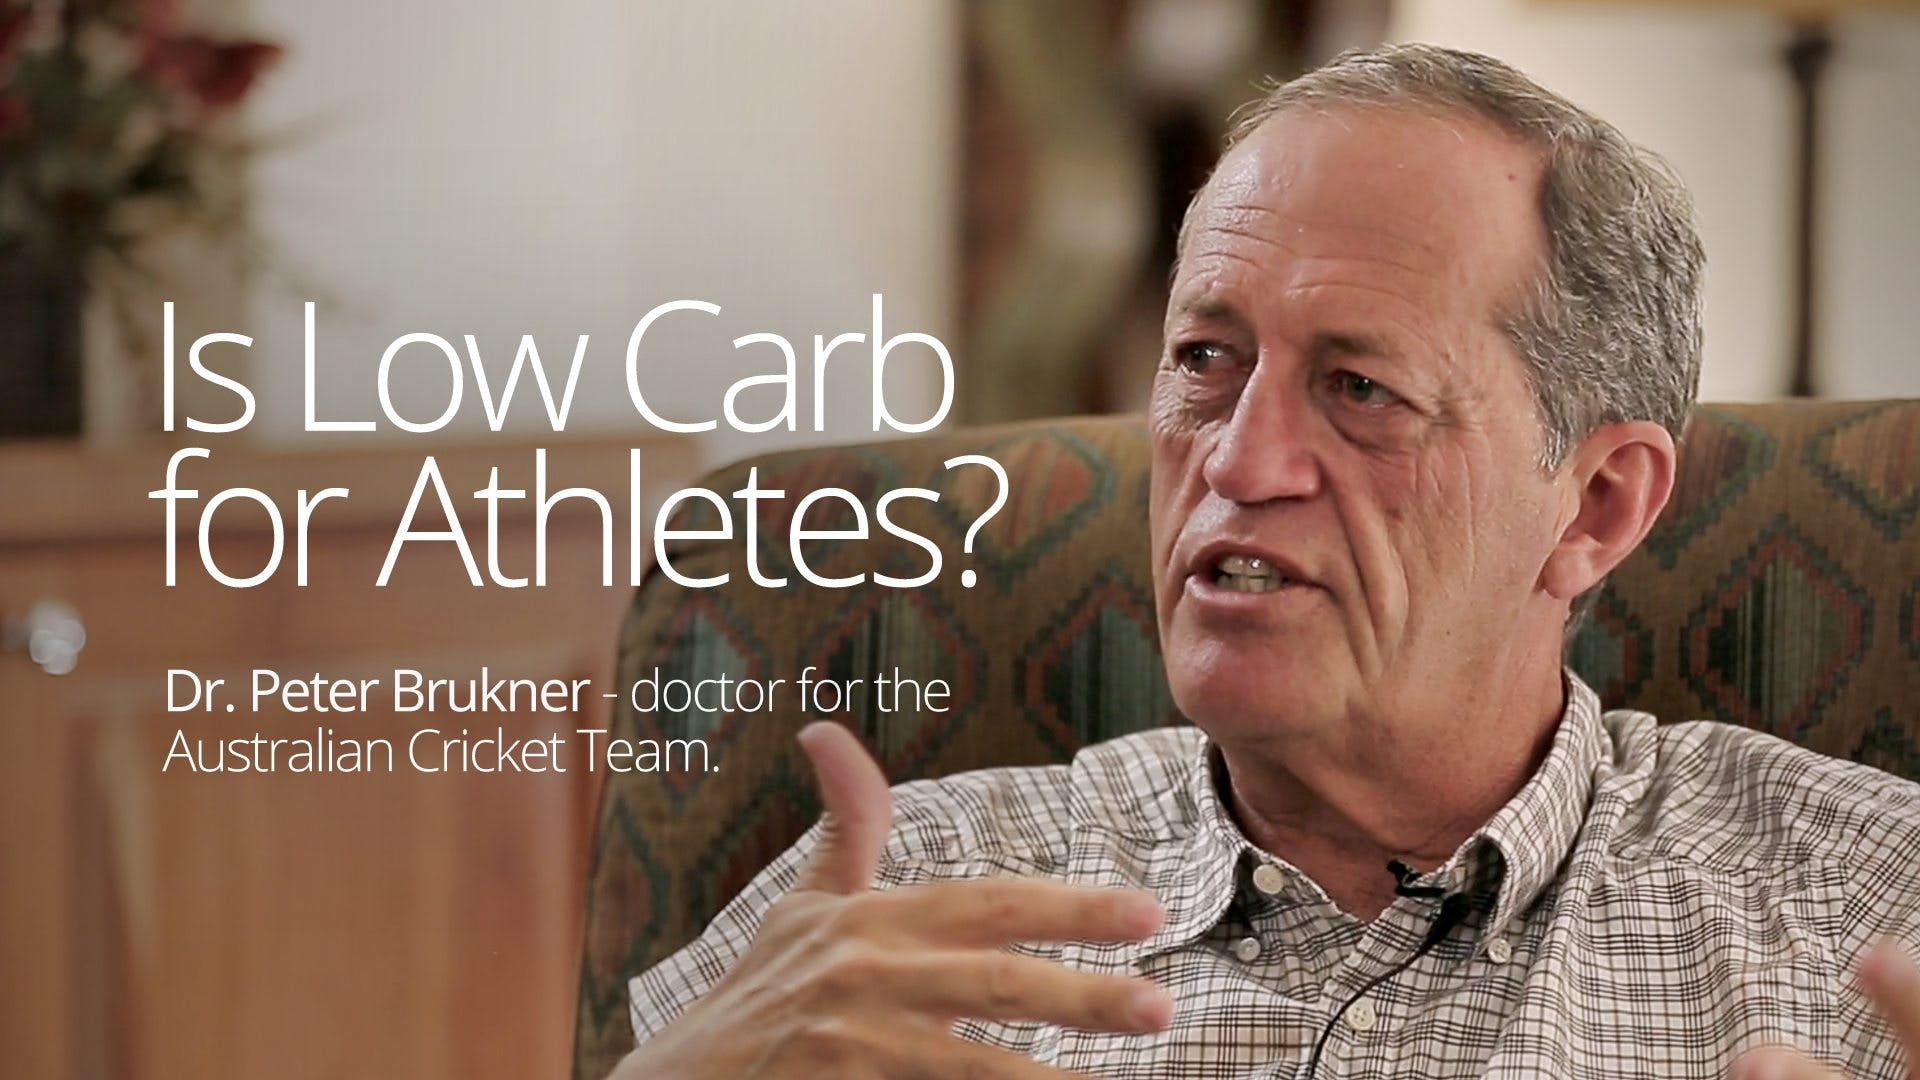 Is Low Carb for Athletes? – Interview with Dr. Peter Brukner